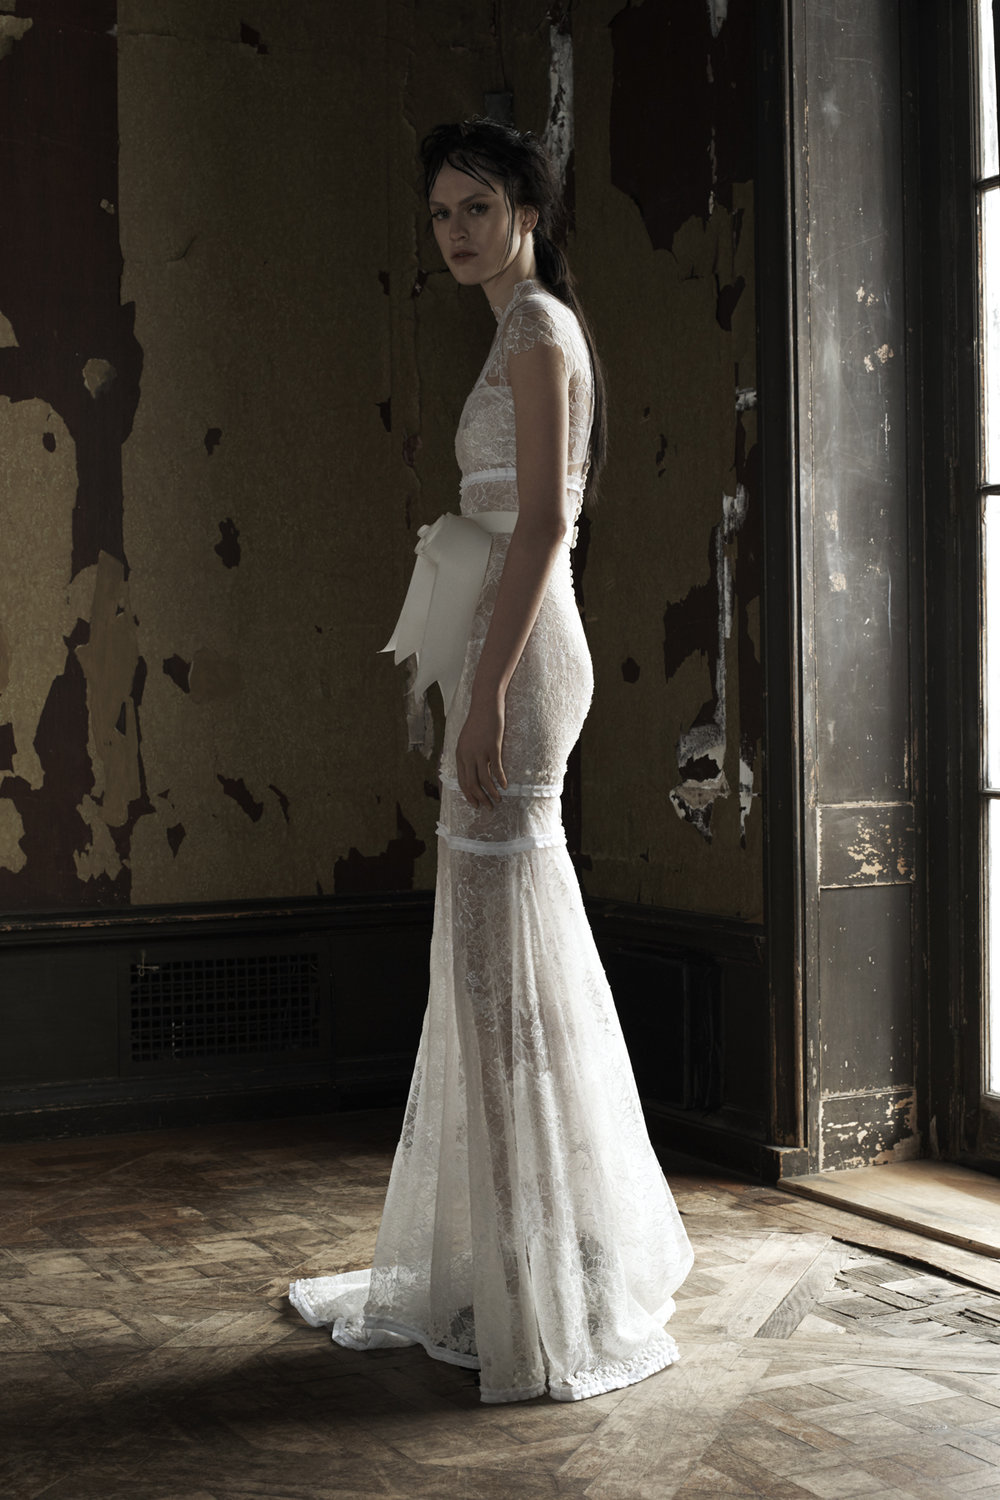 Season: Spring 2016    Gown name: Isabel    Description: A light ivory cap sleeve hand applique Chantilly lace soft mermaid gown with pleated ribbon and silk flower trim accented by double row bridal buttons down the back.